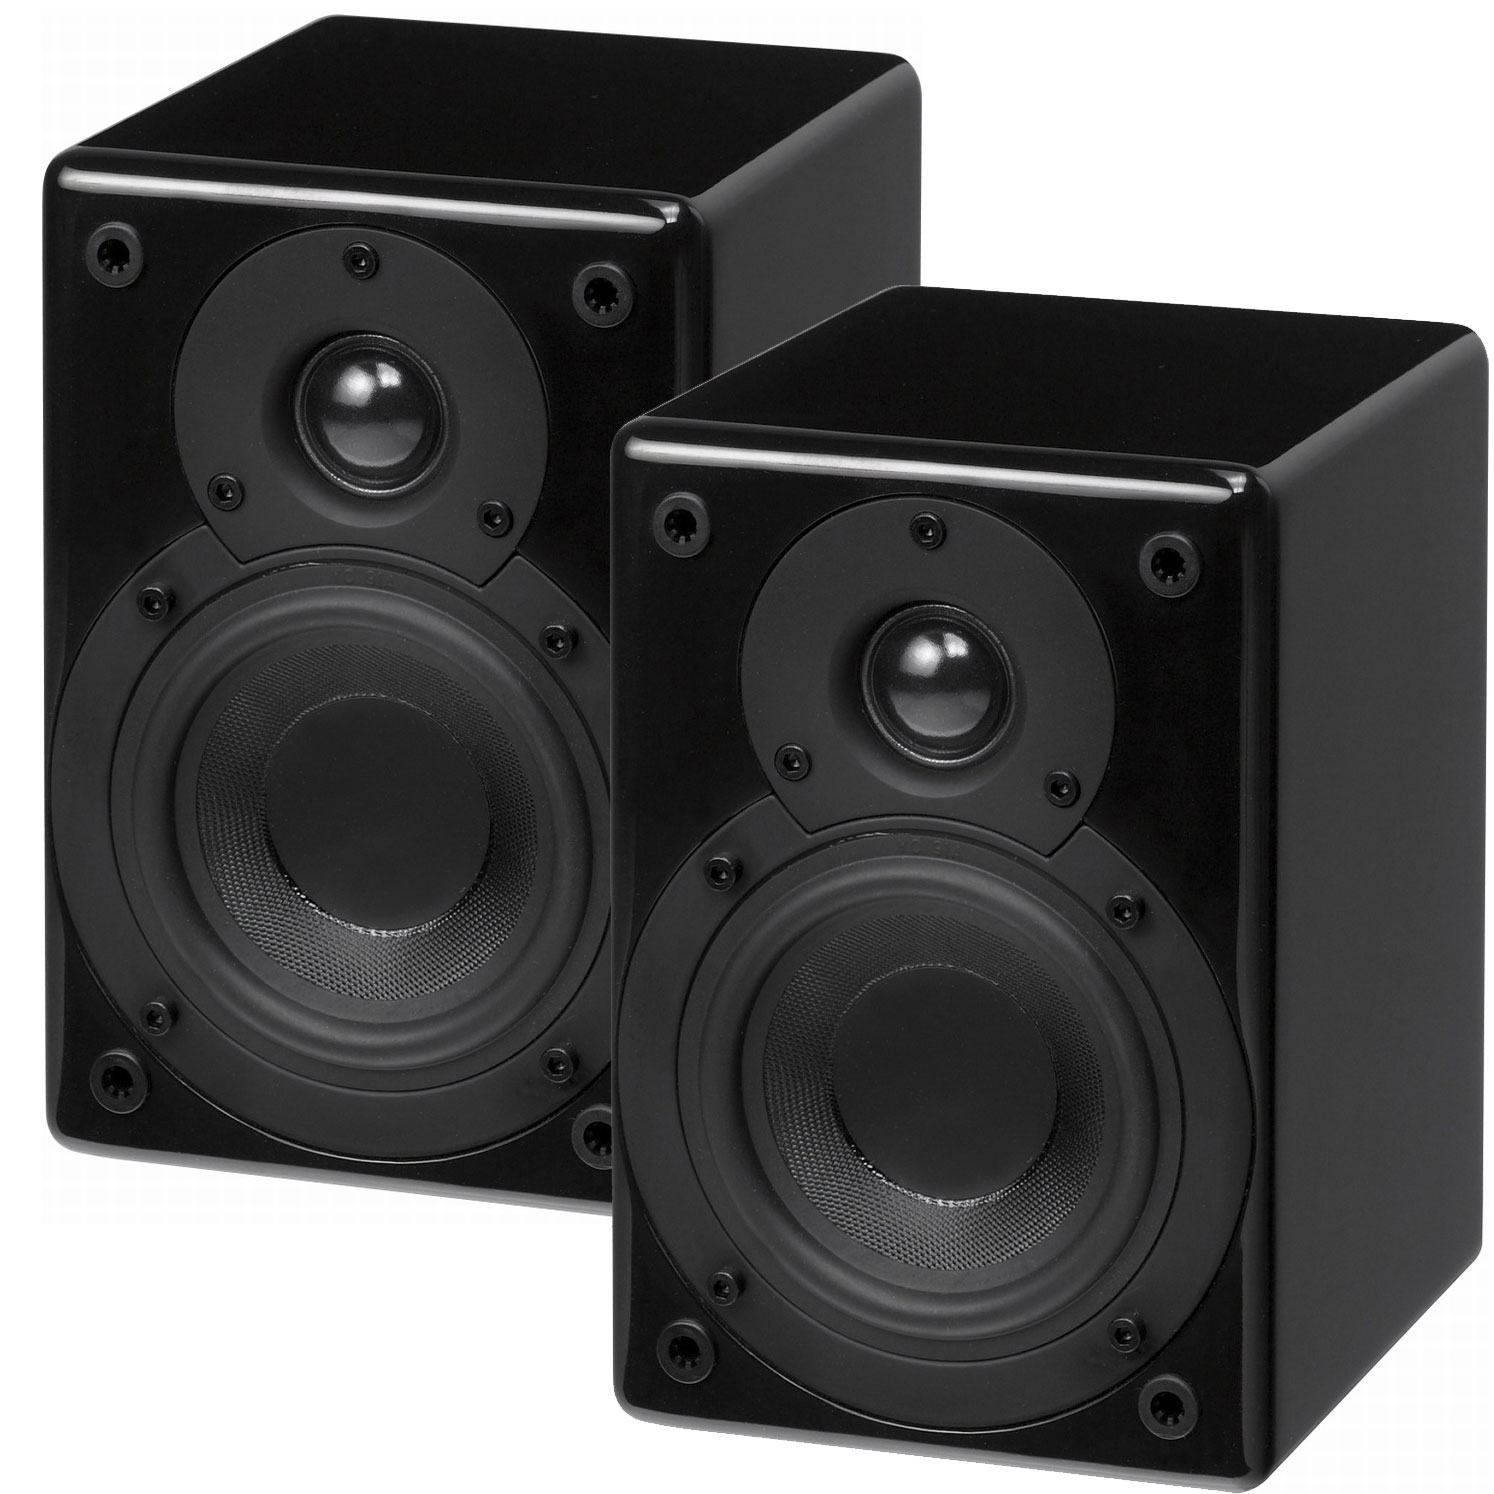 scansonic s4 noir par paire enceintes hifi scansonic sur. Black Bedroom Furniture Sets. Home Design Ideas